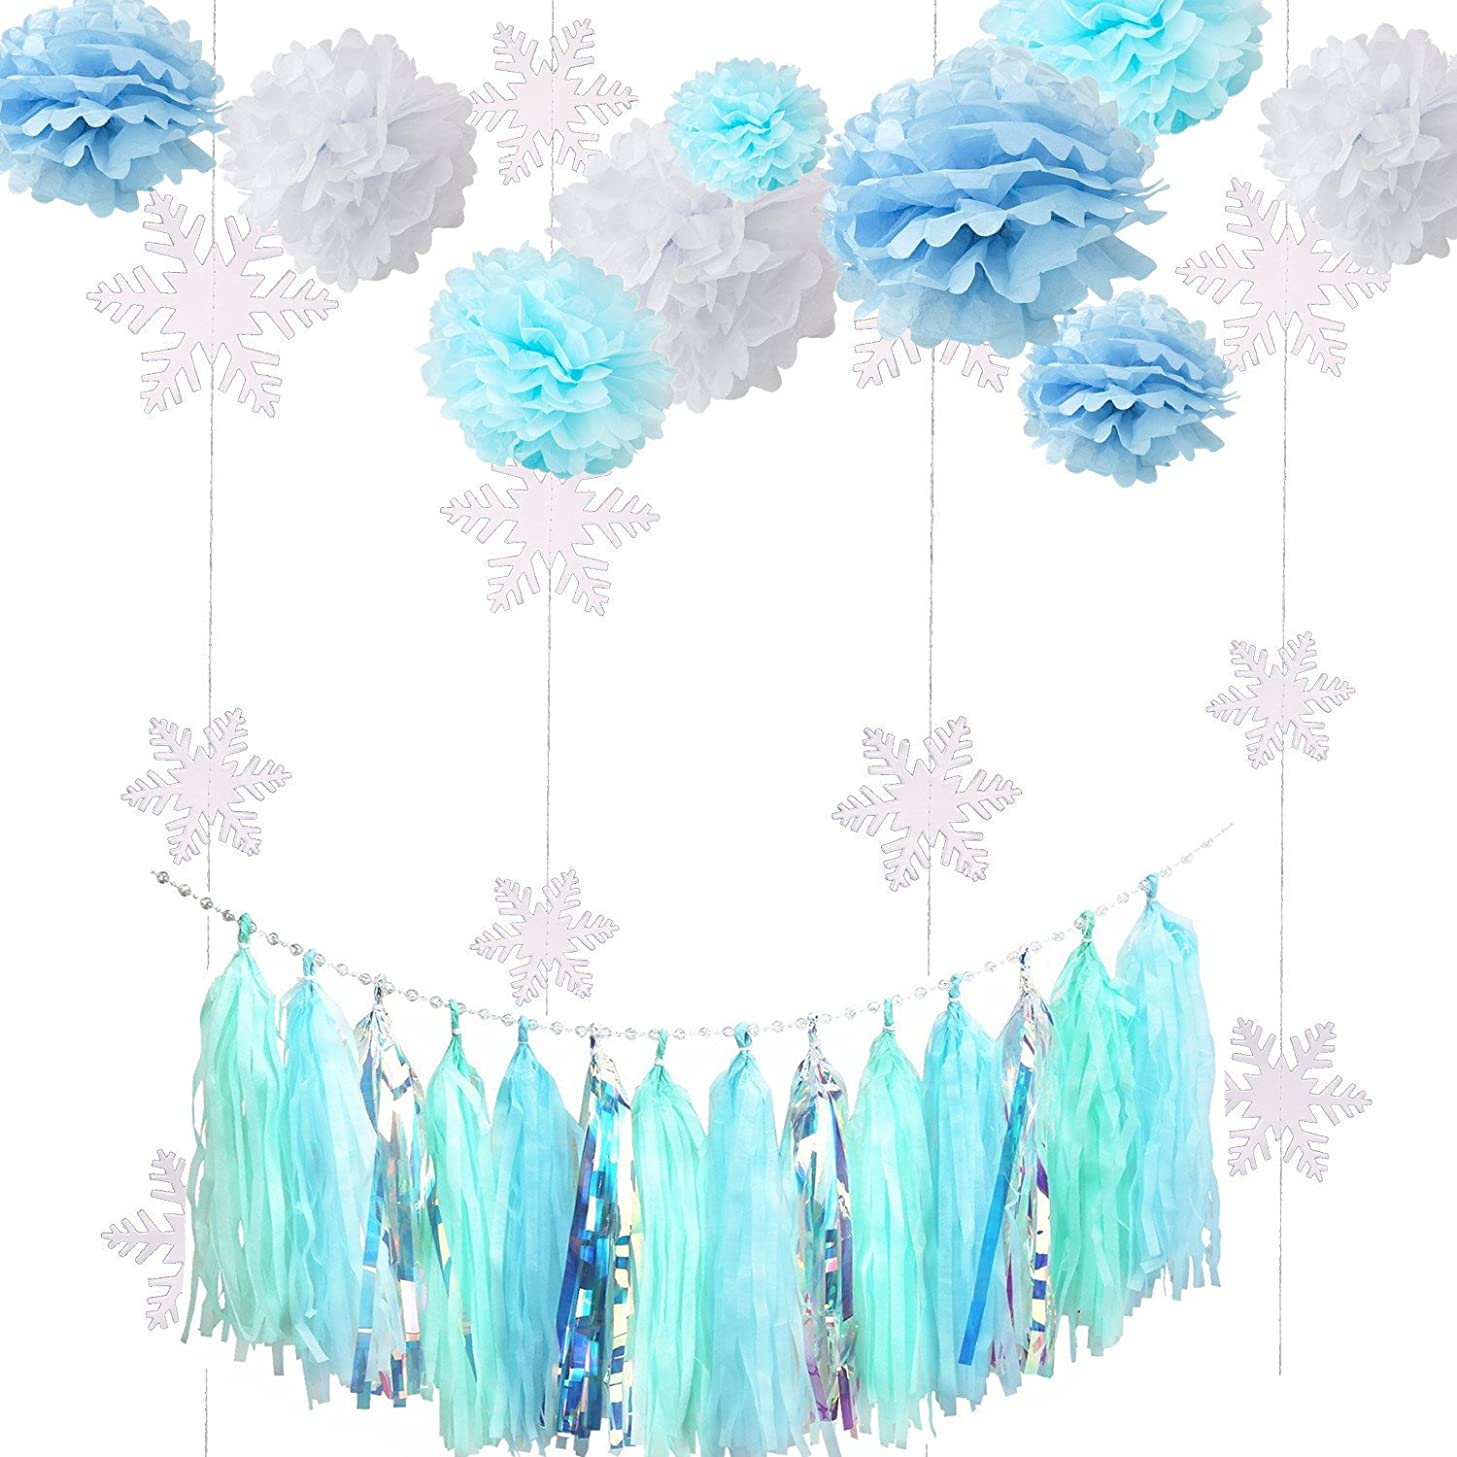 Fonder Mols Frozen Party Decorations Kit Blue White Tissue Pom Flowers Snowflake Garland Ice Tassel Garland for Baby Shower Birthday Party Backdrop Table Centerpieces Wall Decor 23pcs